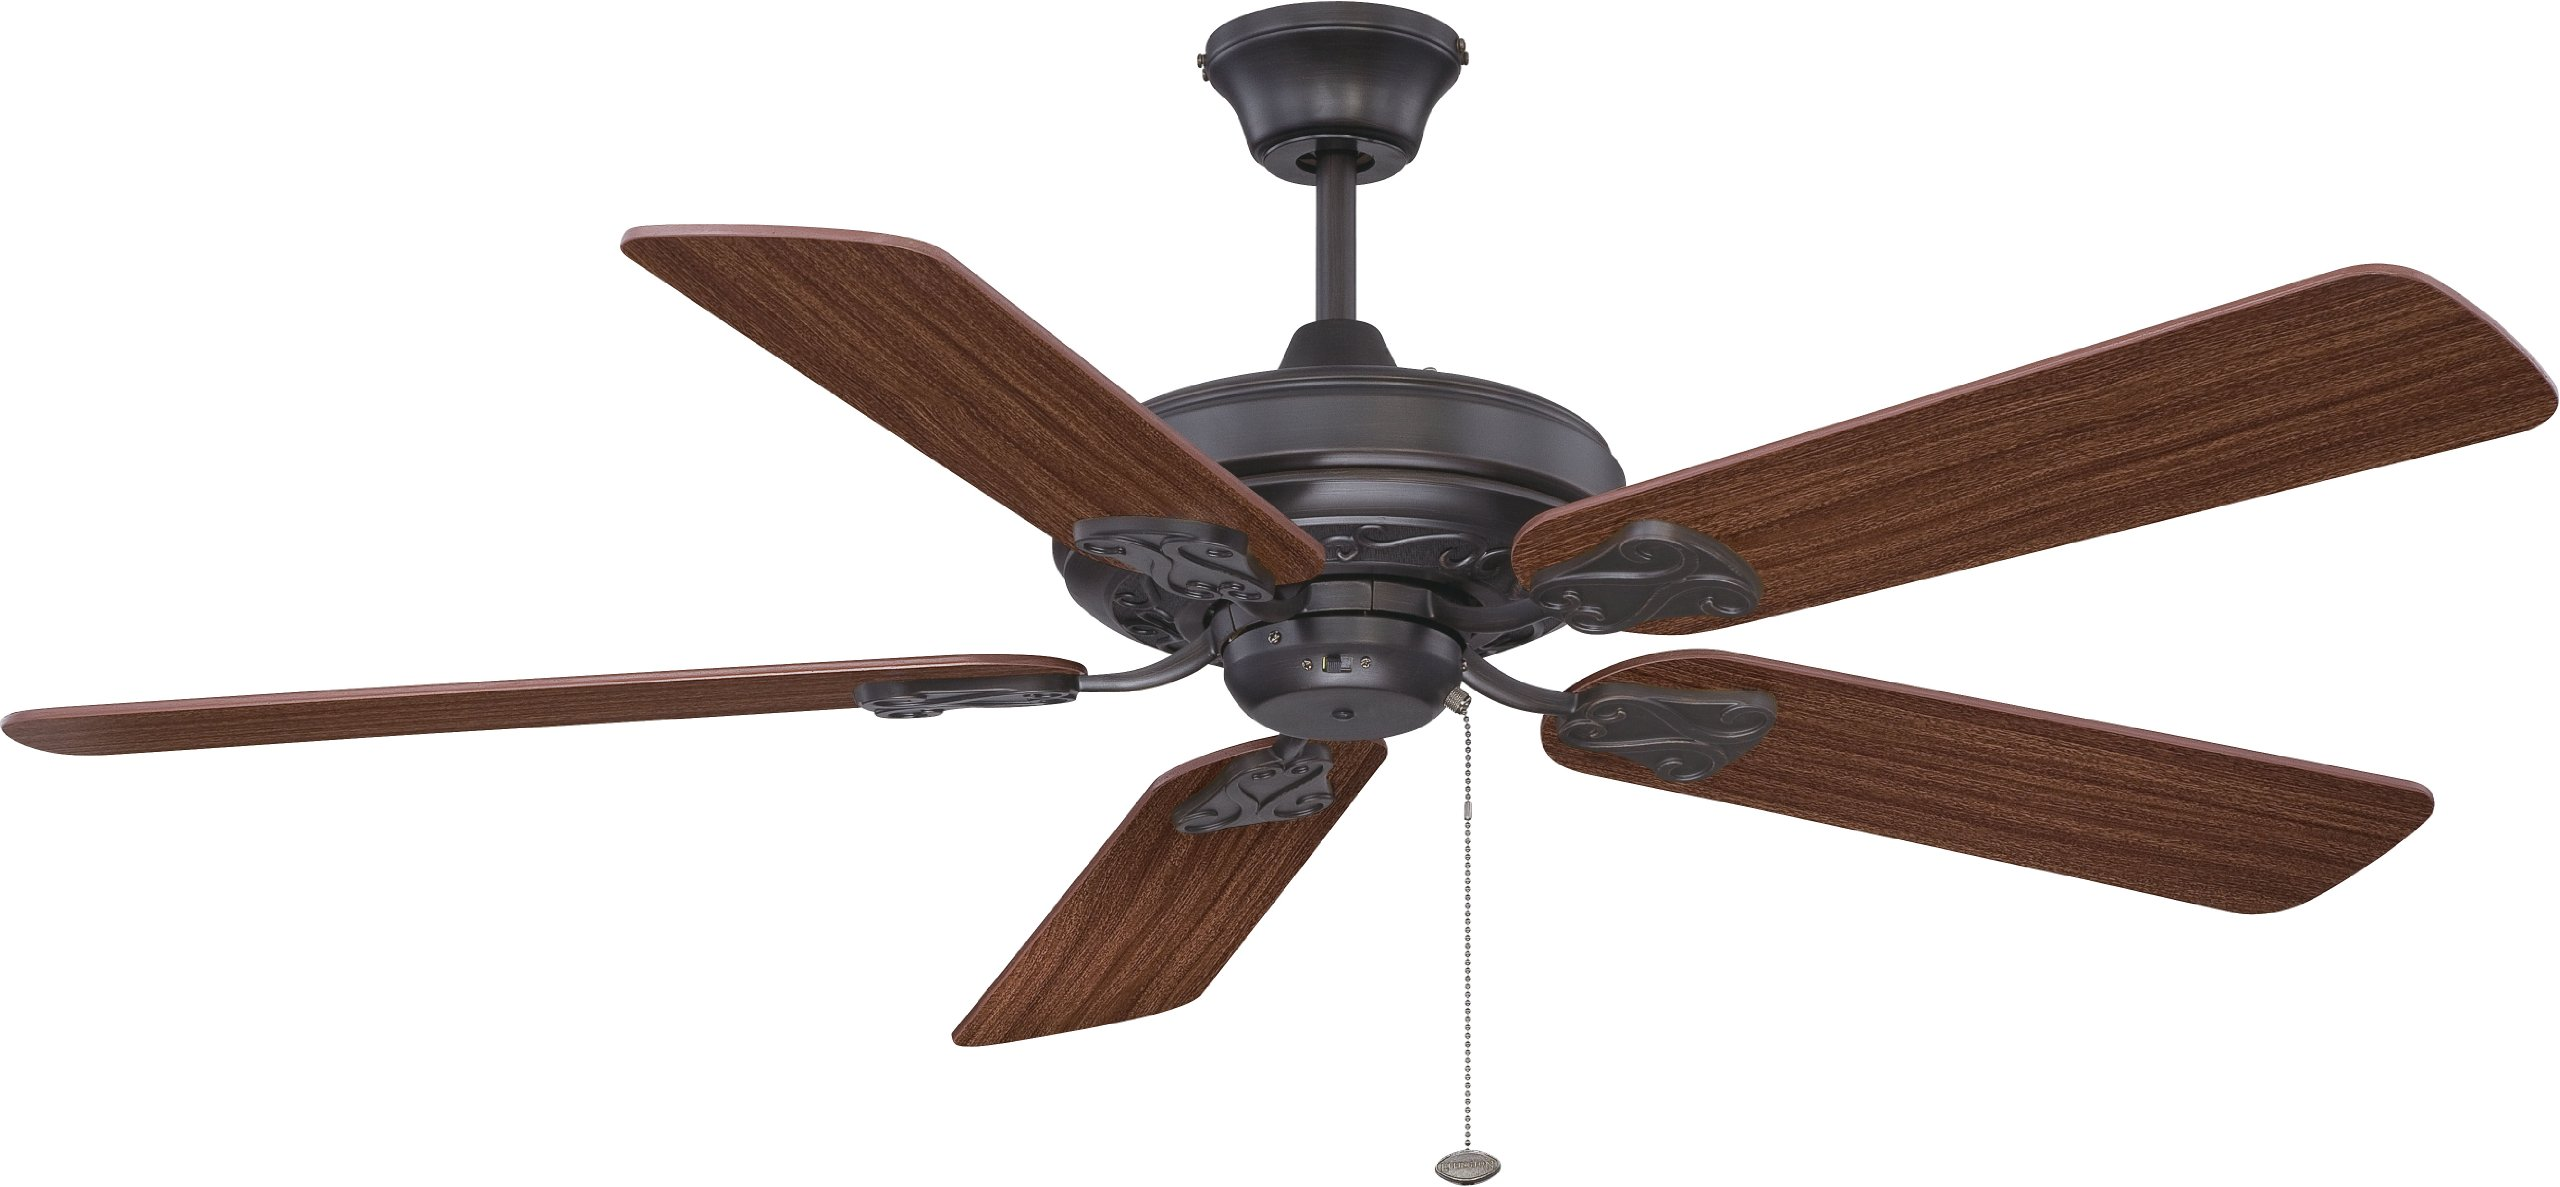 Craftmade MAJ52ABZ5 Ceiling Fan with Blades Included, 52'' by Ellington